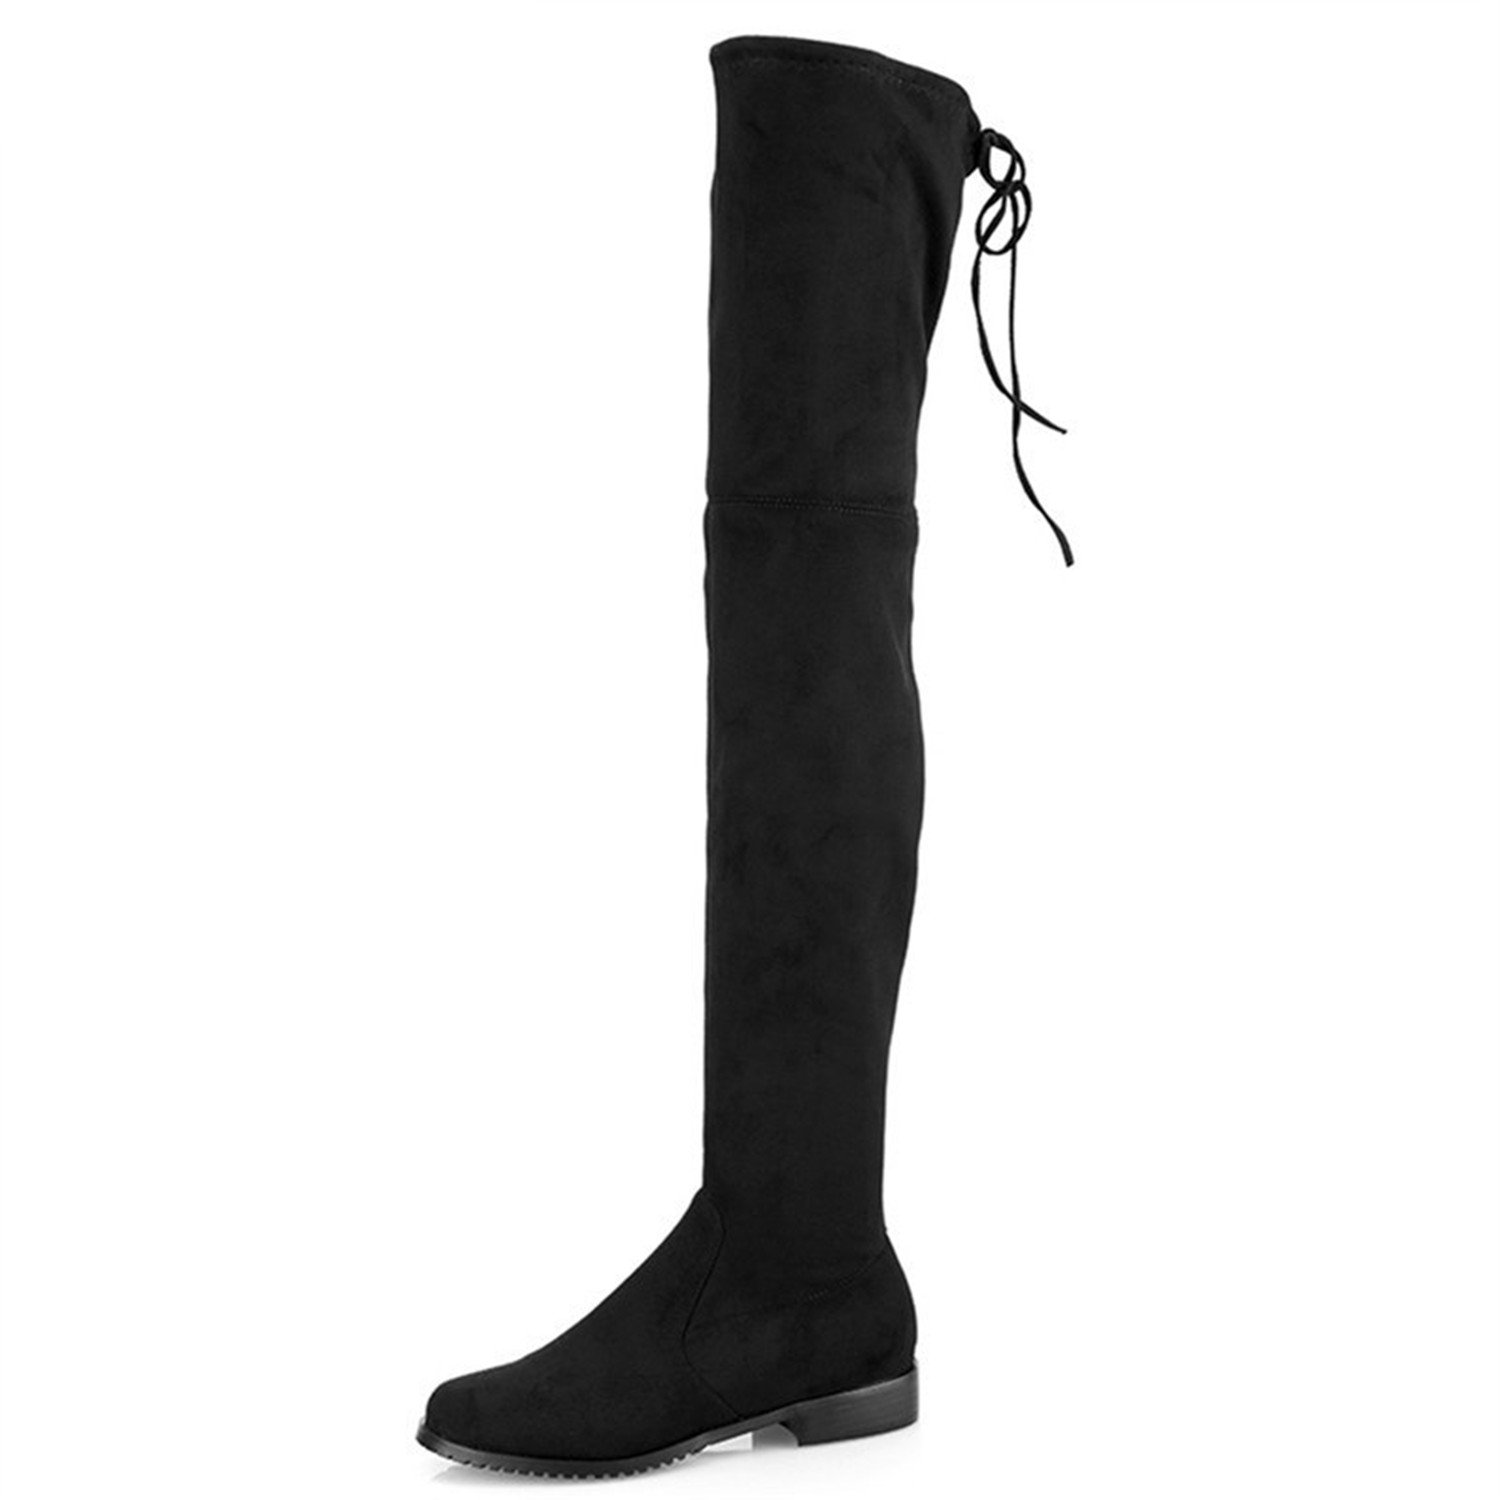 Dormery Women Boots Stretch Faux Faux Faux Suede Over The Knee Boots Flat Thigh High Boots Ladies Long Autumn Winter Shoes Gray B078QXCD7M Boots 15a791